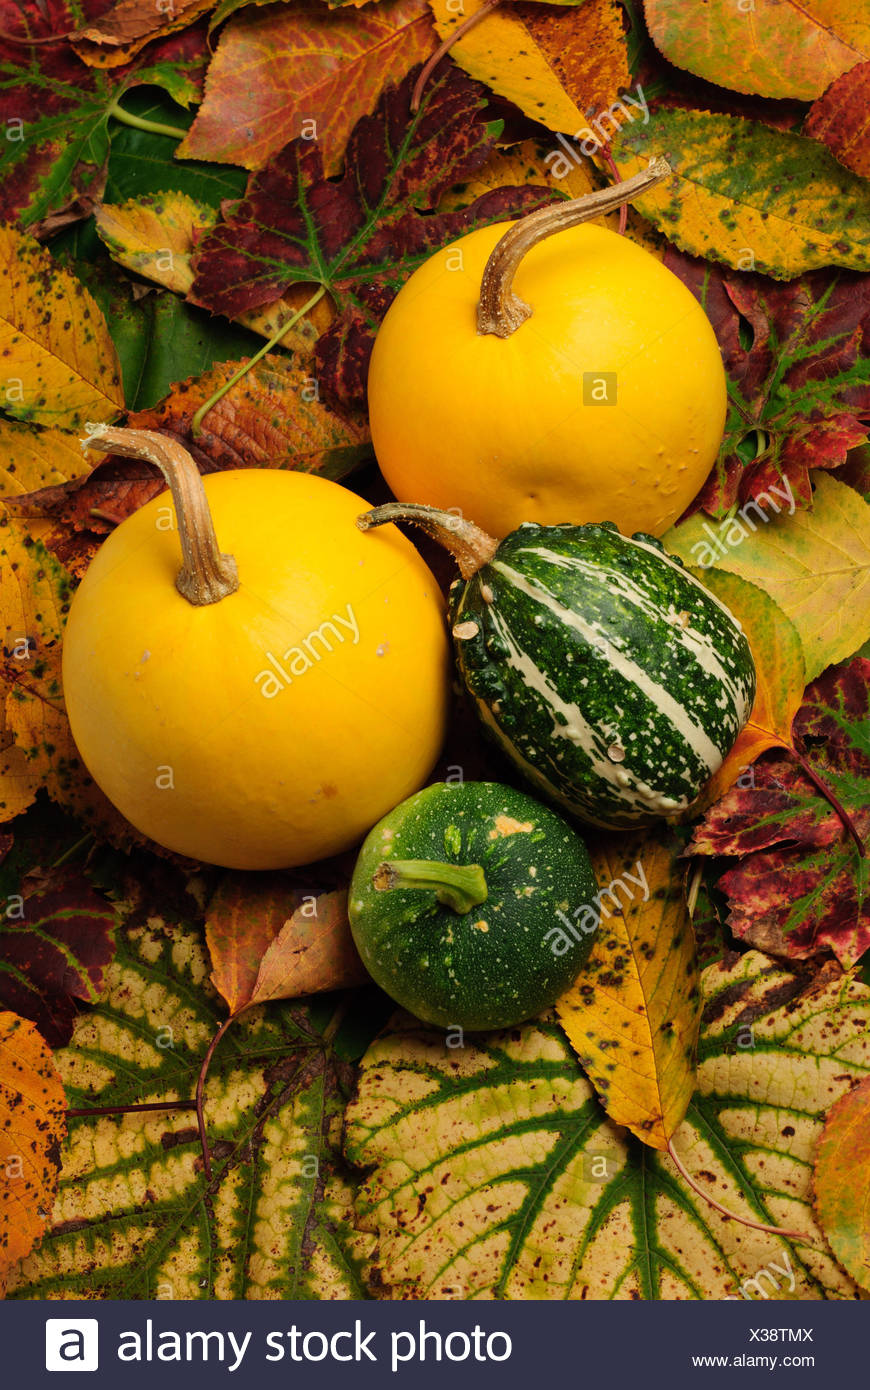 leaves cucurbits orange leaf tree trees garden plant green leaves flora grapes Stock Photo